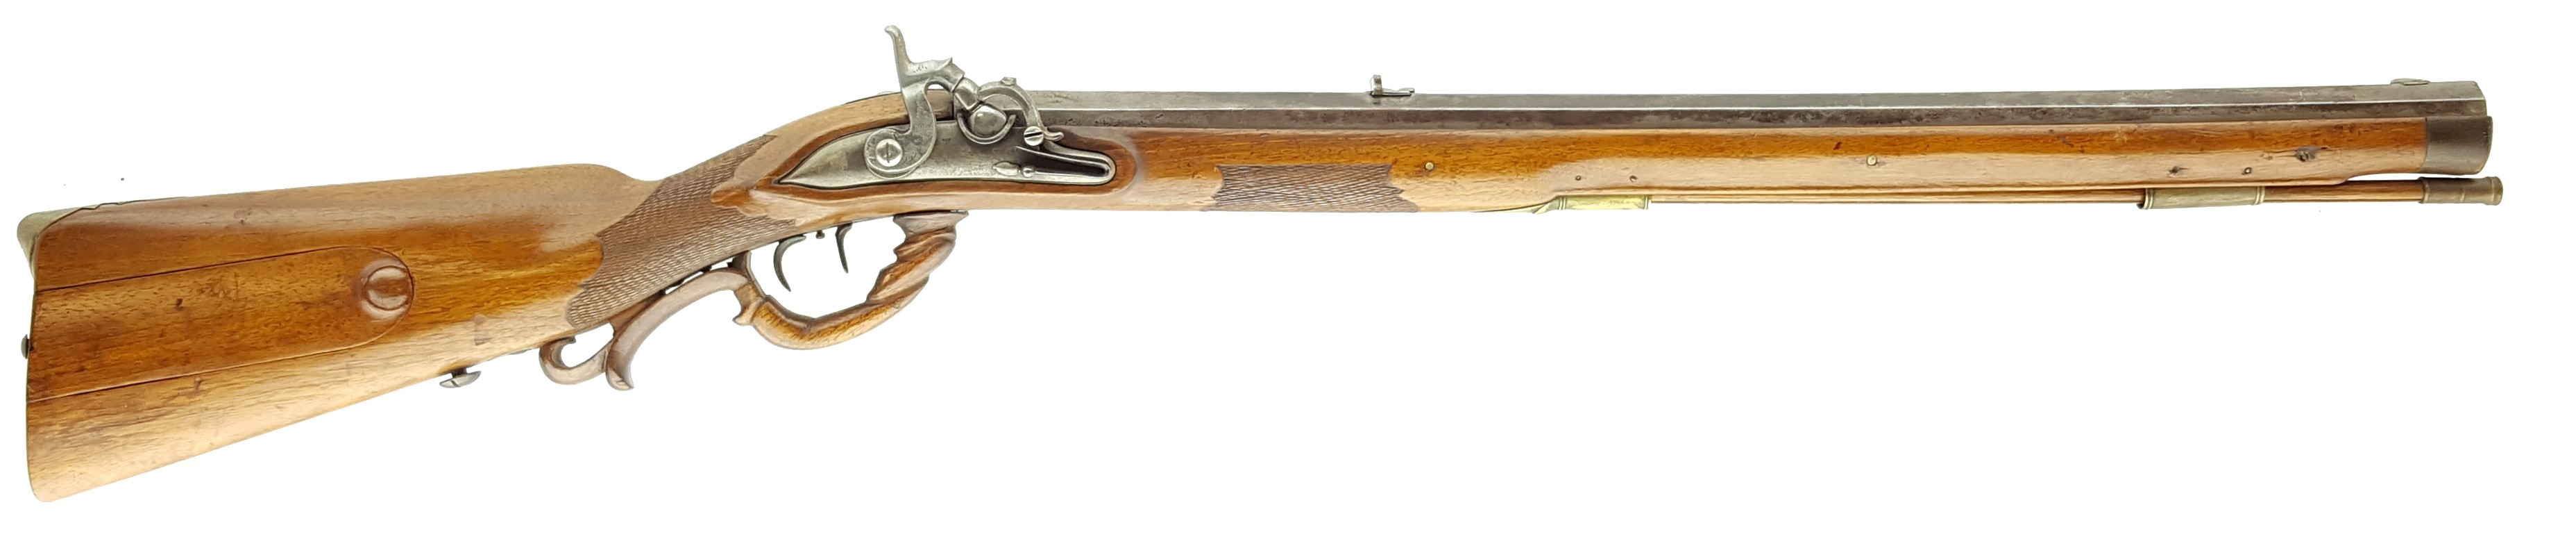 how to clean a flintlock rifle